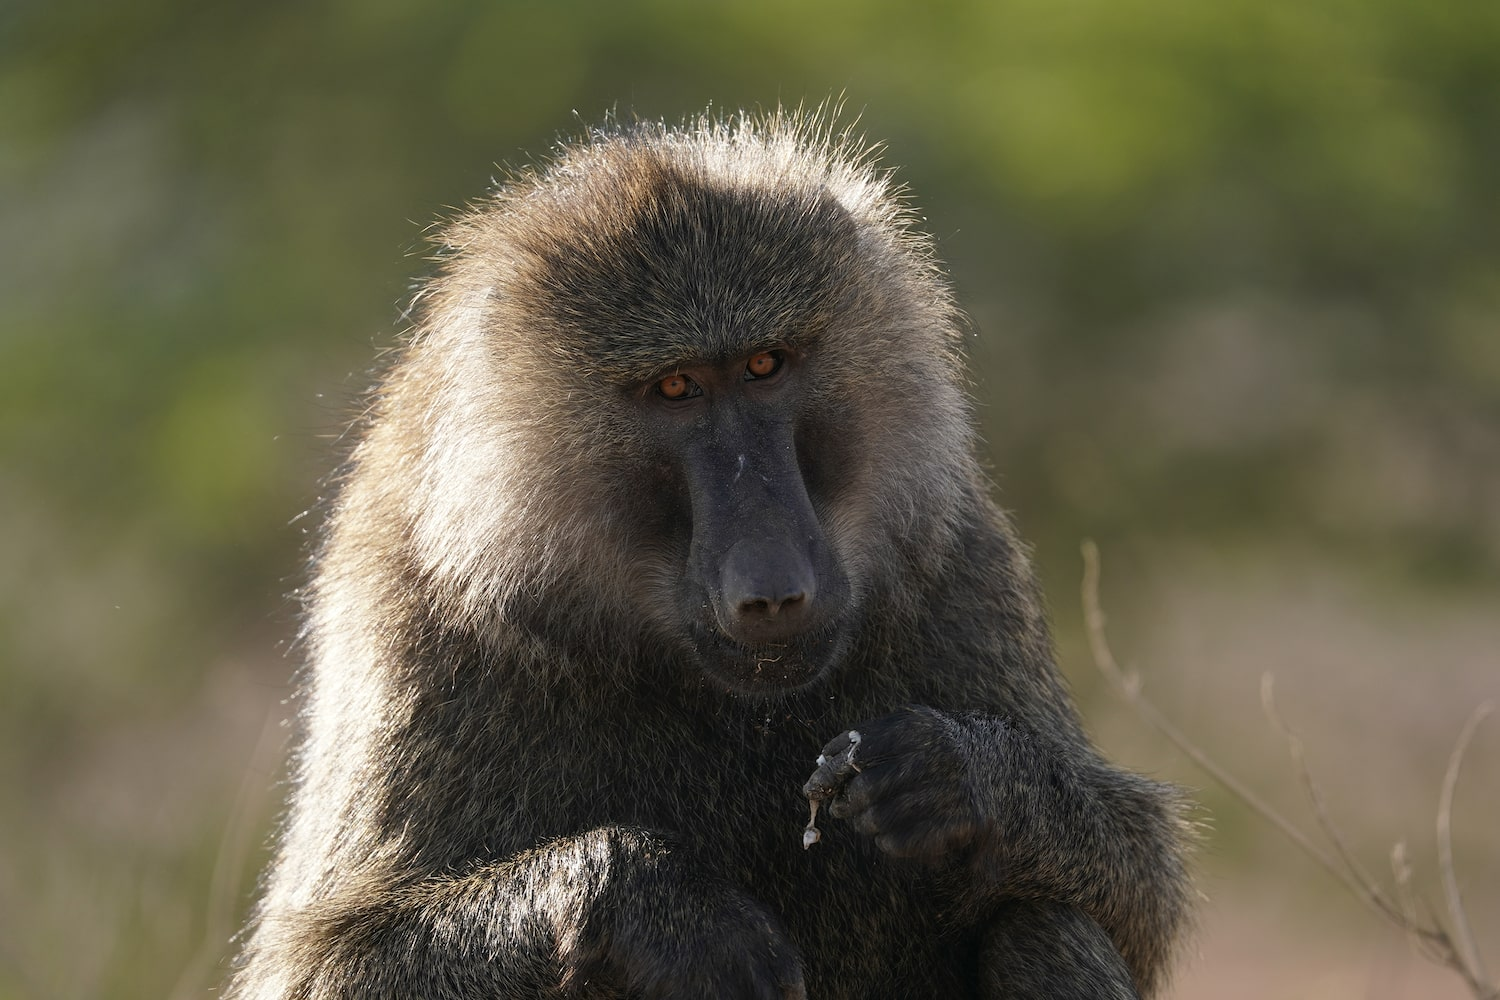 portrait-of-monkey-looking-in-camera-alpha-7III